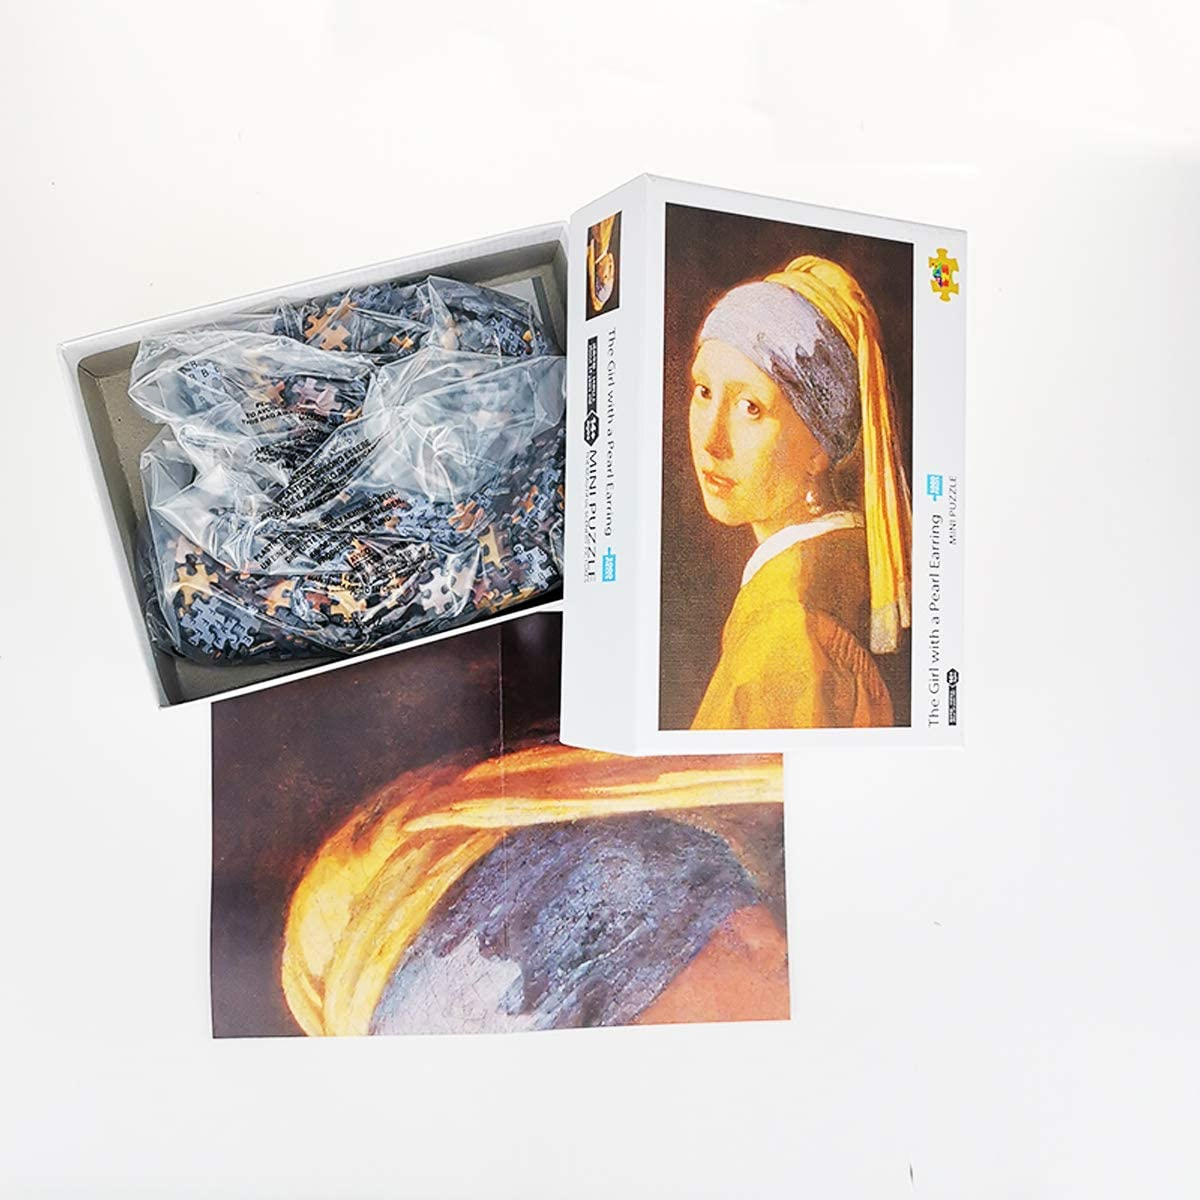 World Famous Painting 1000 Pieces Small Jigsaw Puzzle Mini Jigsaw Puzzle for Adults and Kids,Puzzle Size:16.5 X11.7 Inches Girl with a Pearl Earring 42 x 29.7cm